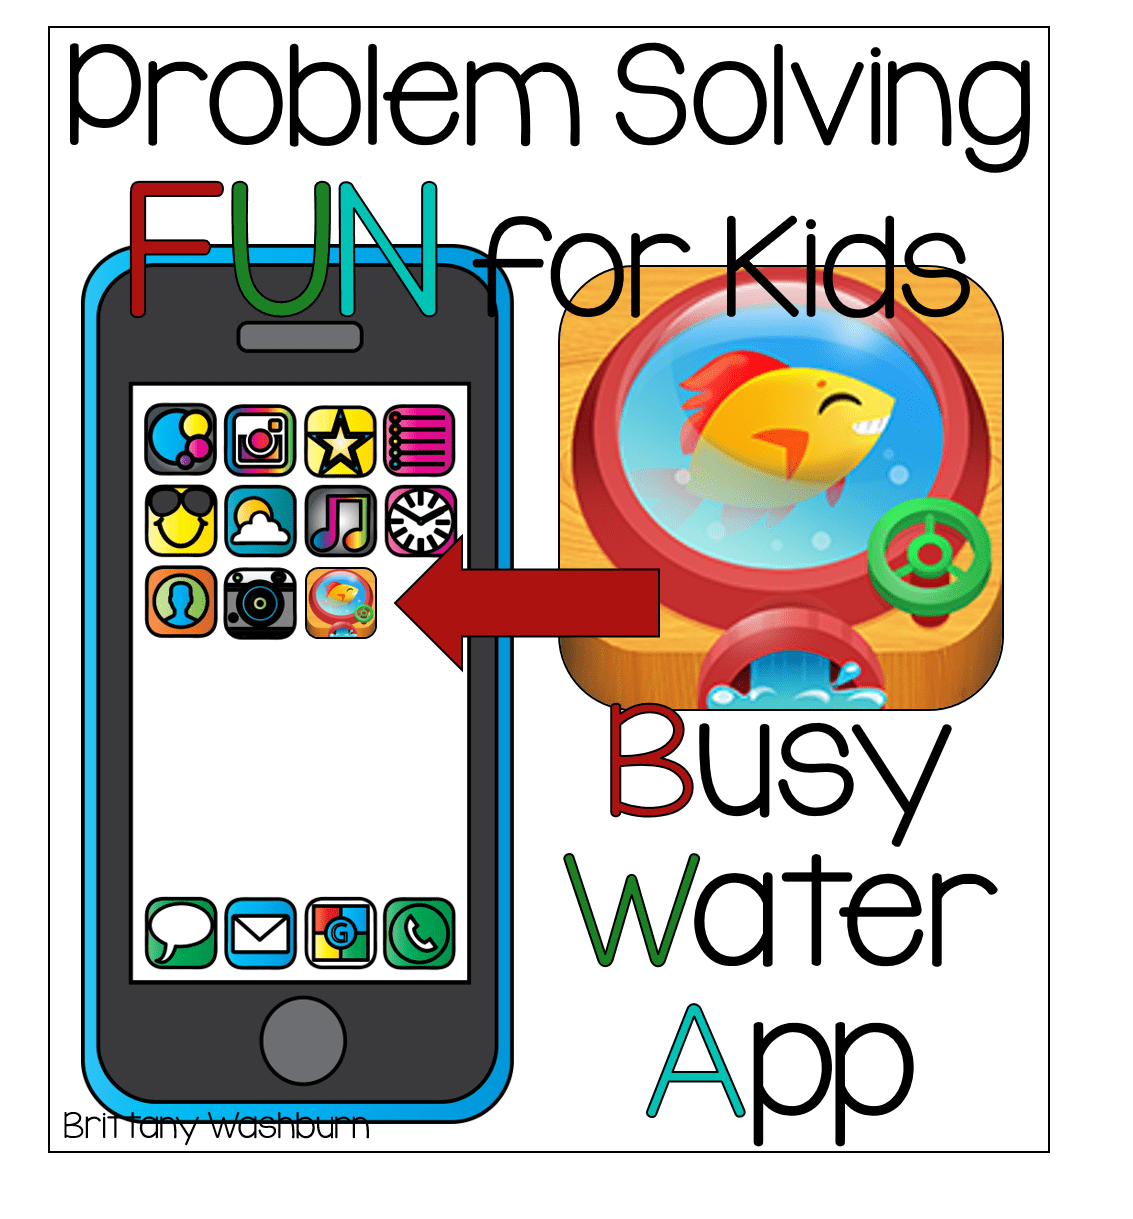 Problem Solving Fun for Kids- Busy Water App